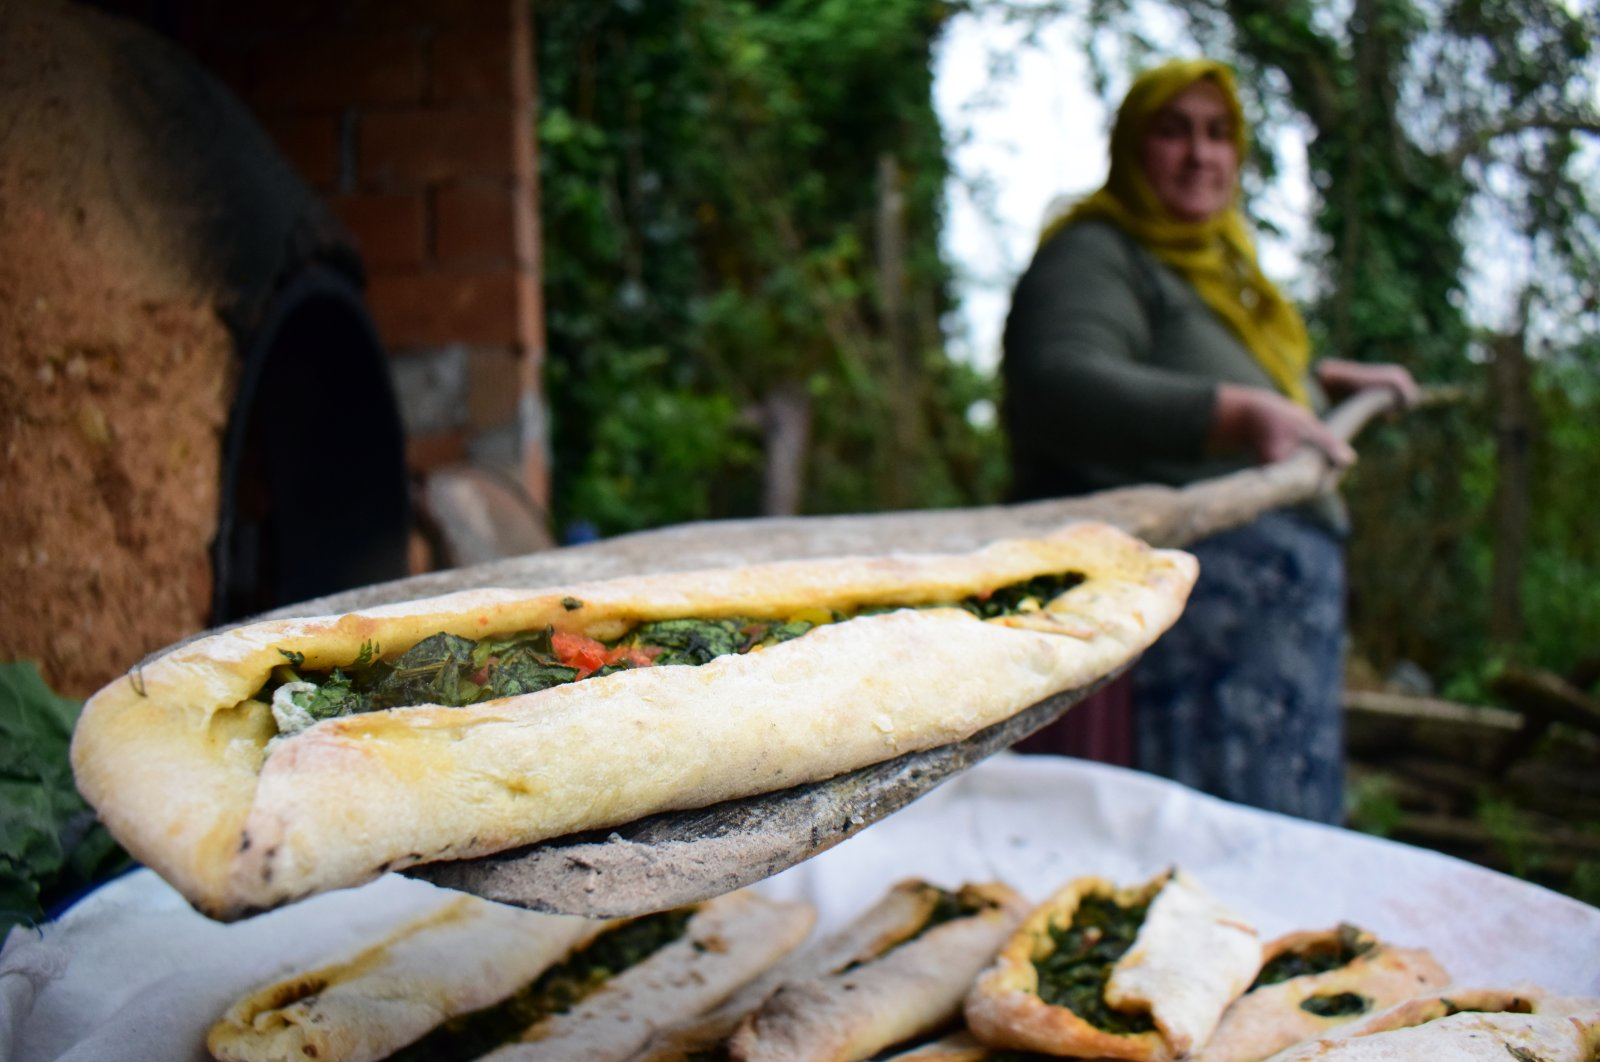 A woman takes a pide filled with collard greens from an earthen oven, in Çayağzı village, Düzce province, Turkey, April 26, 2020. (AA Photo)